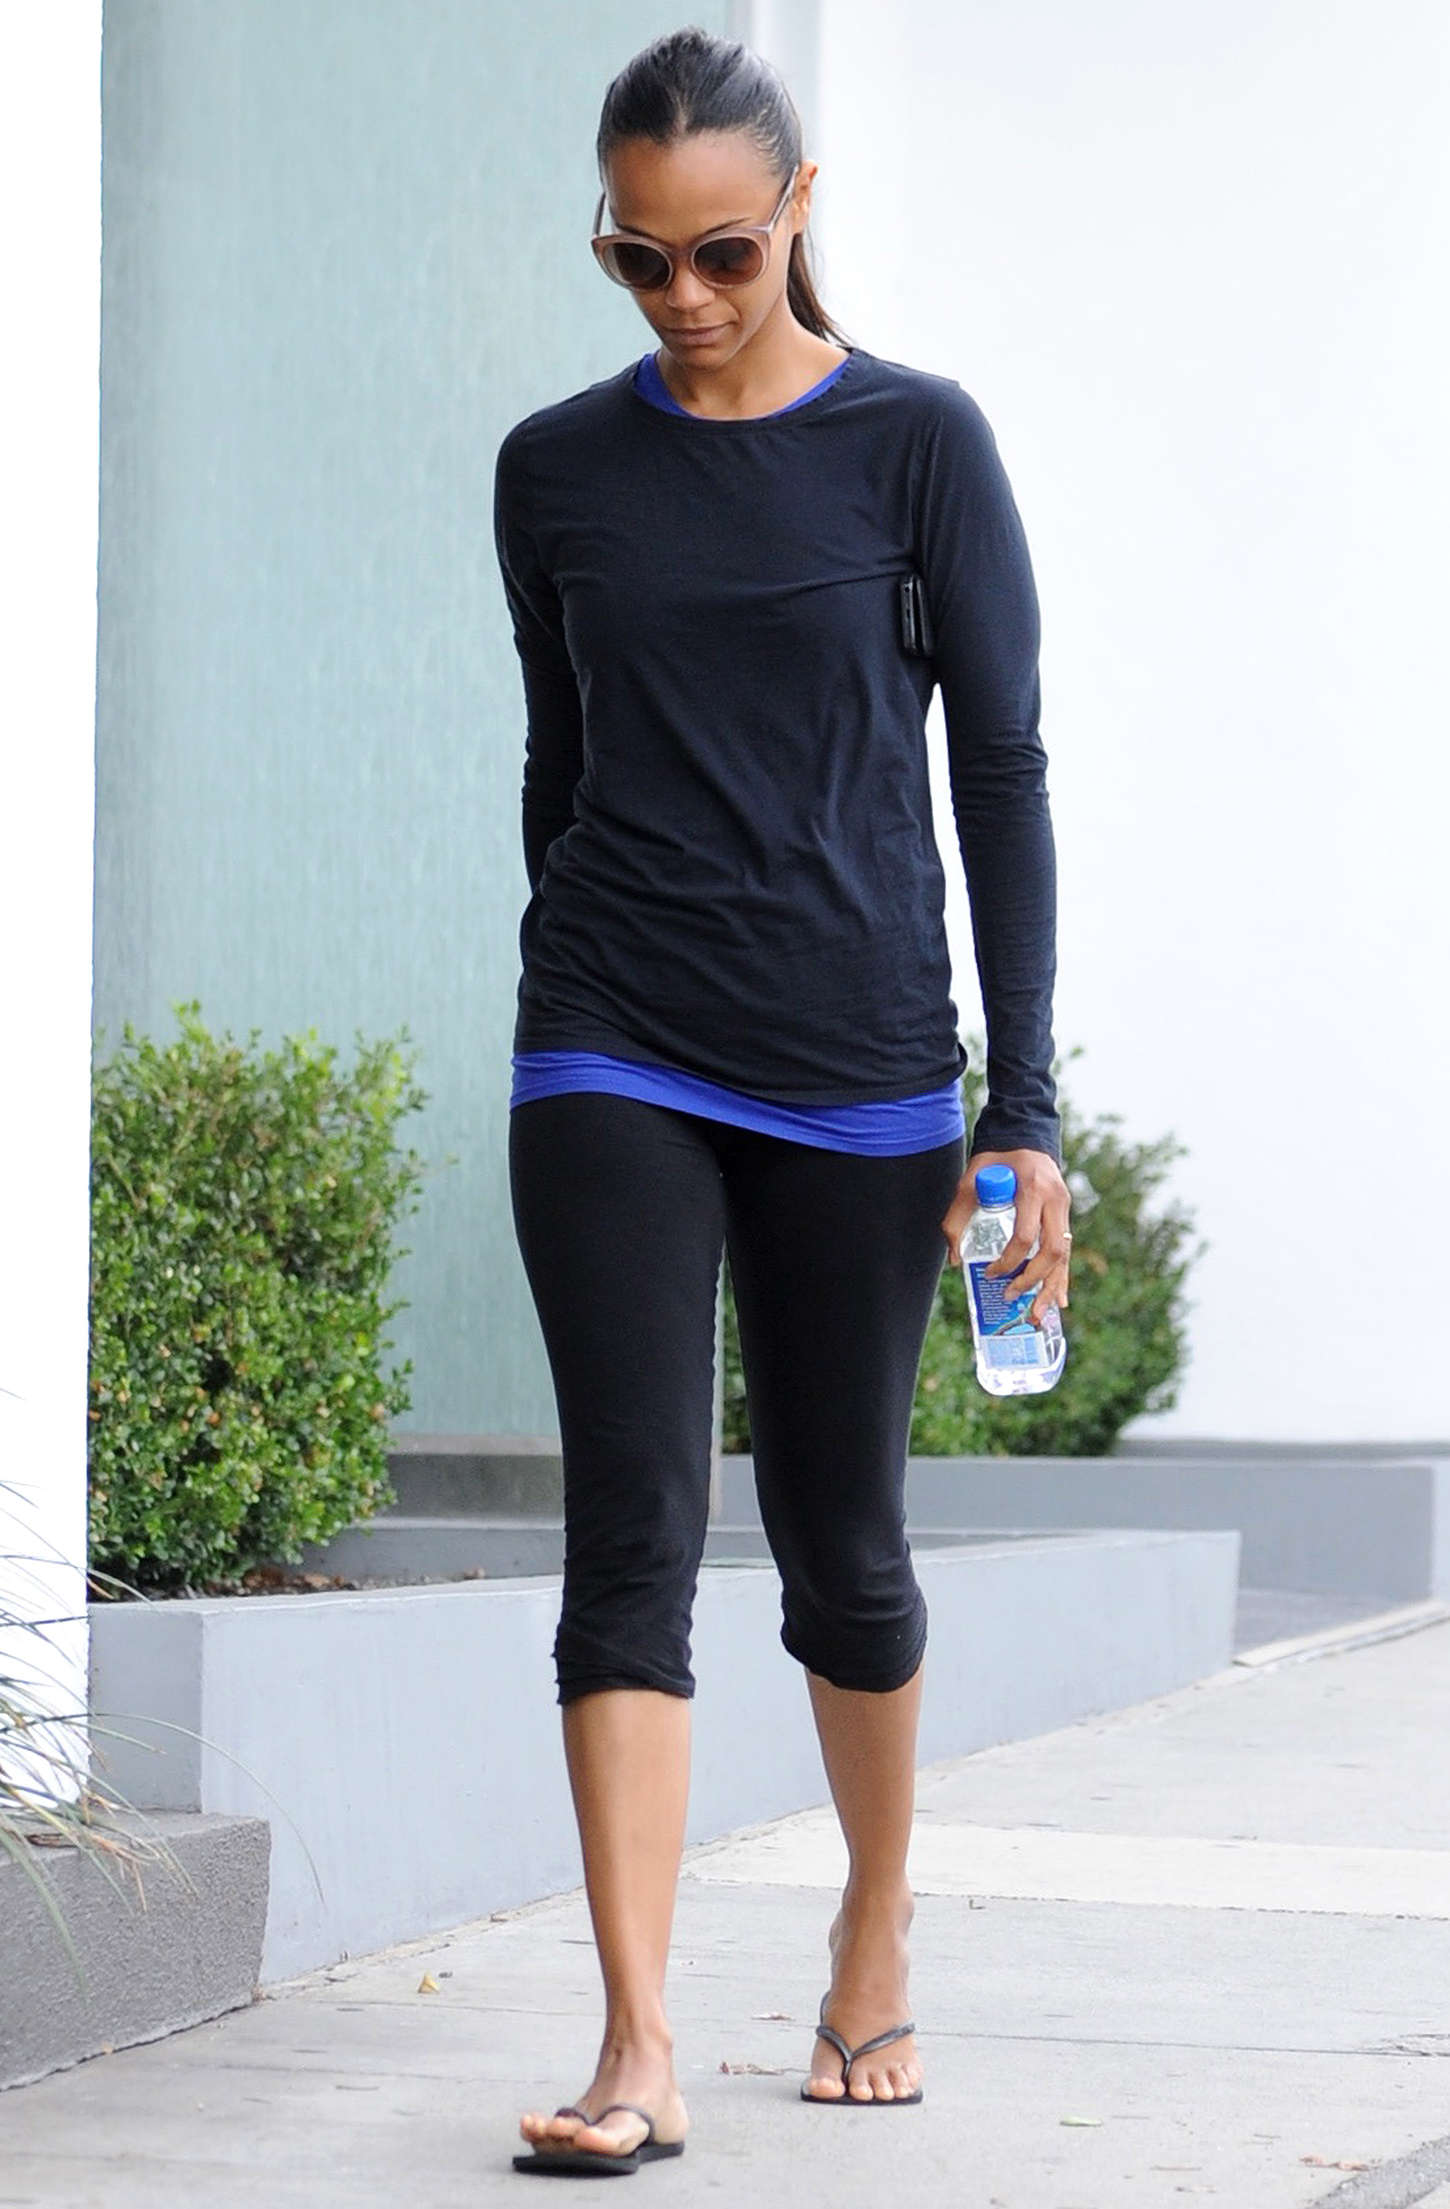 Zoe Saldana Leaving a gym in West Hollywood